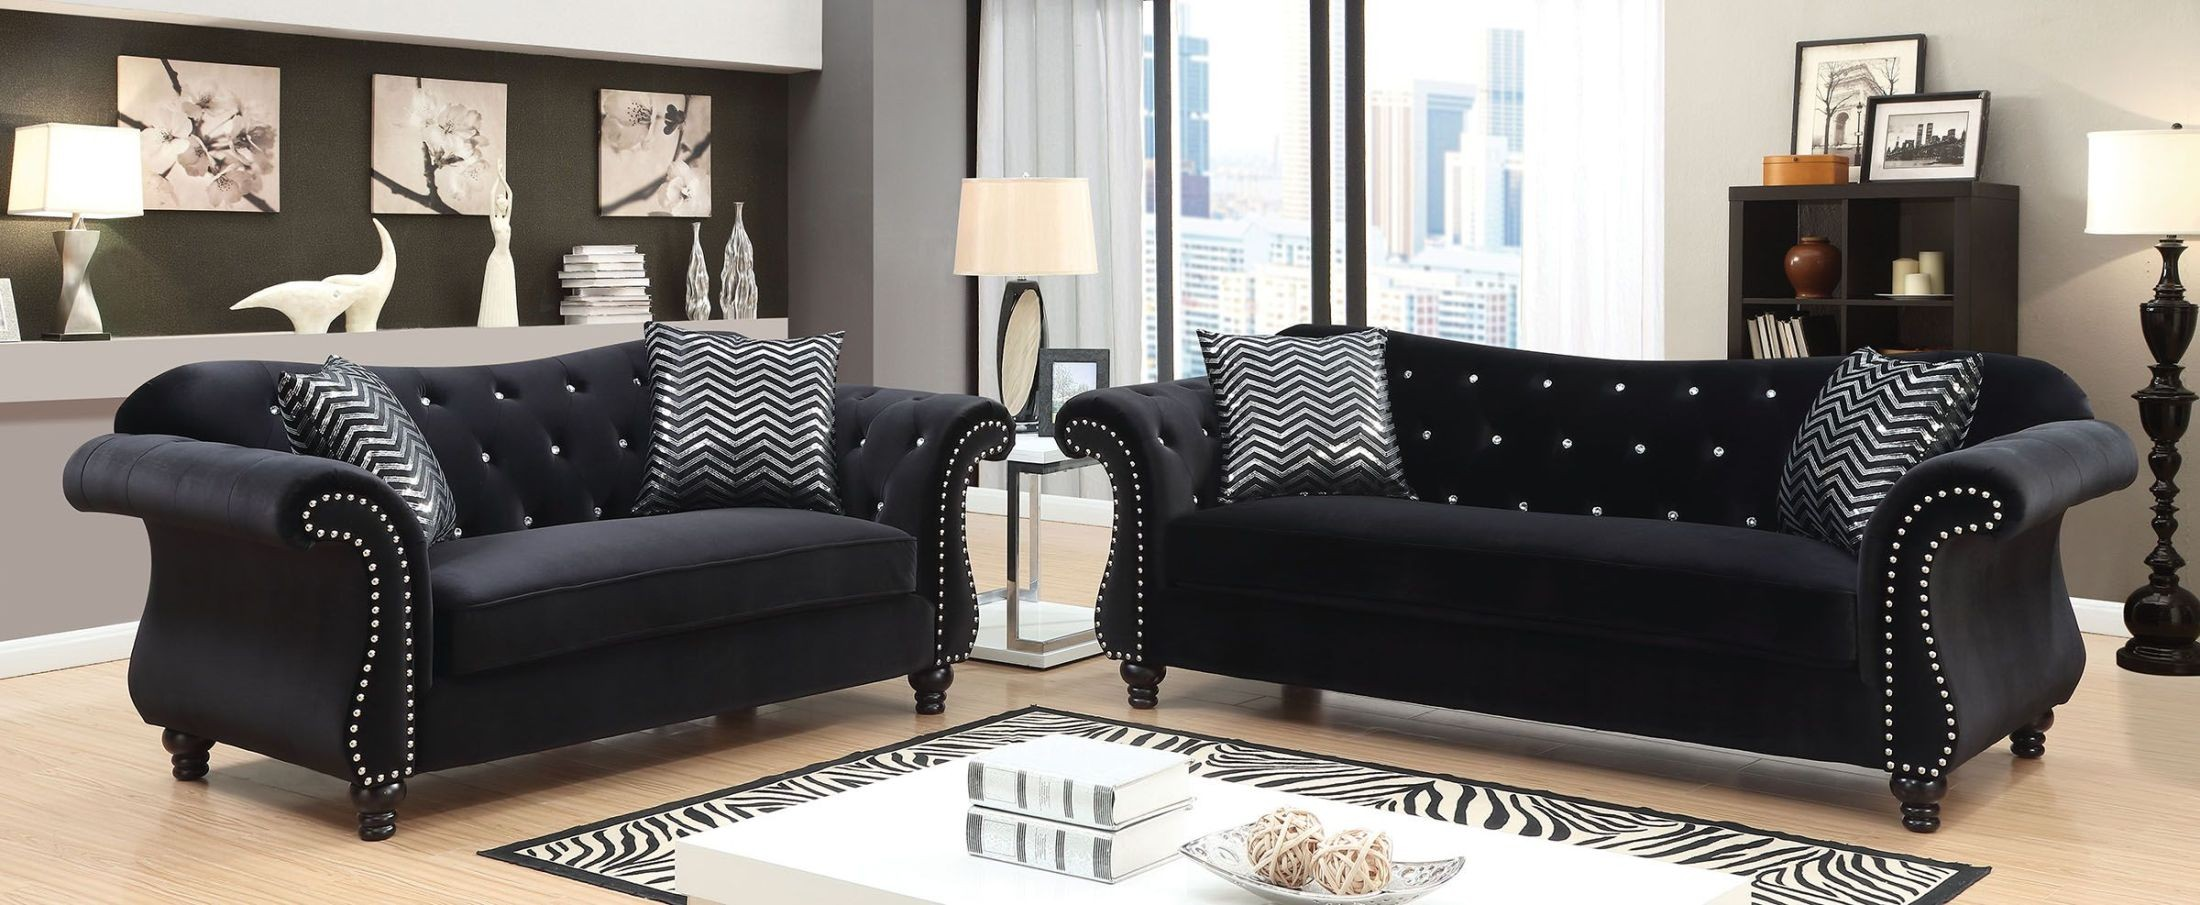 Jolanda I Black Living Room Set